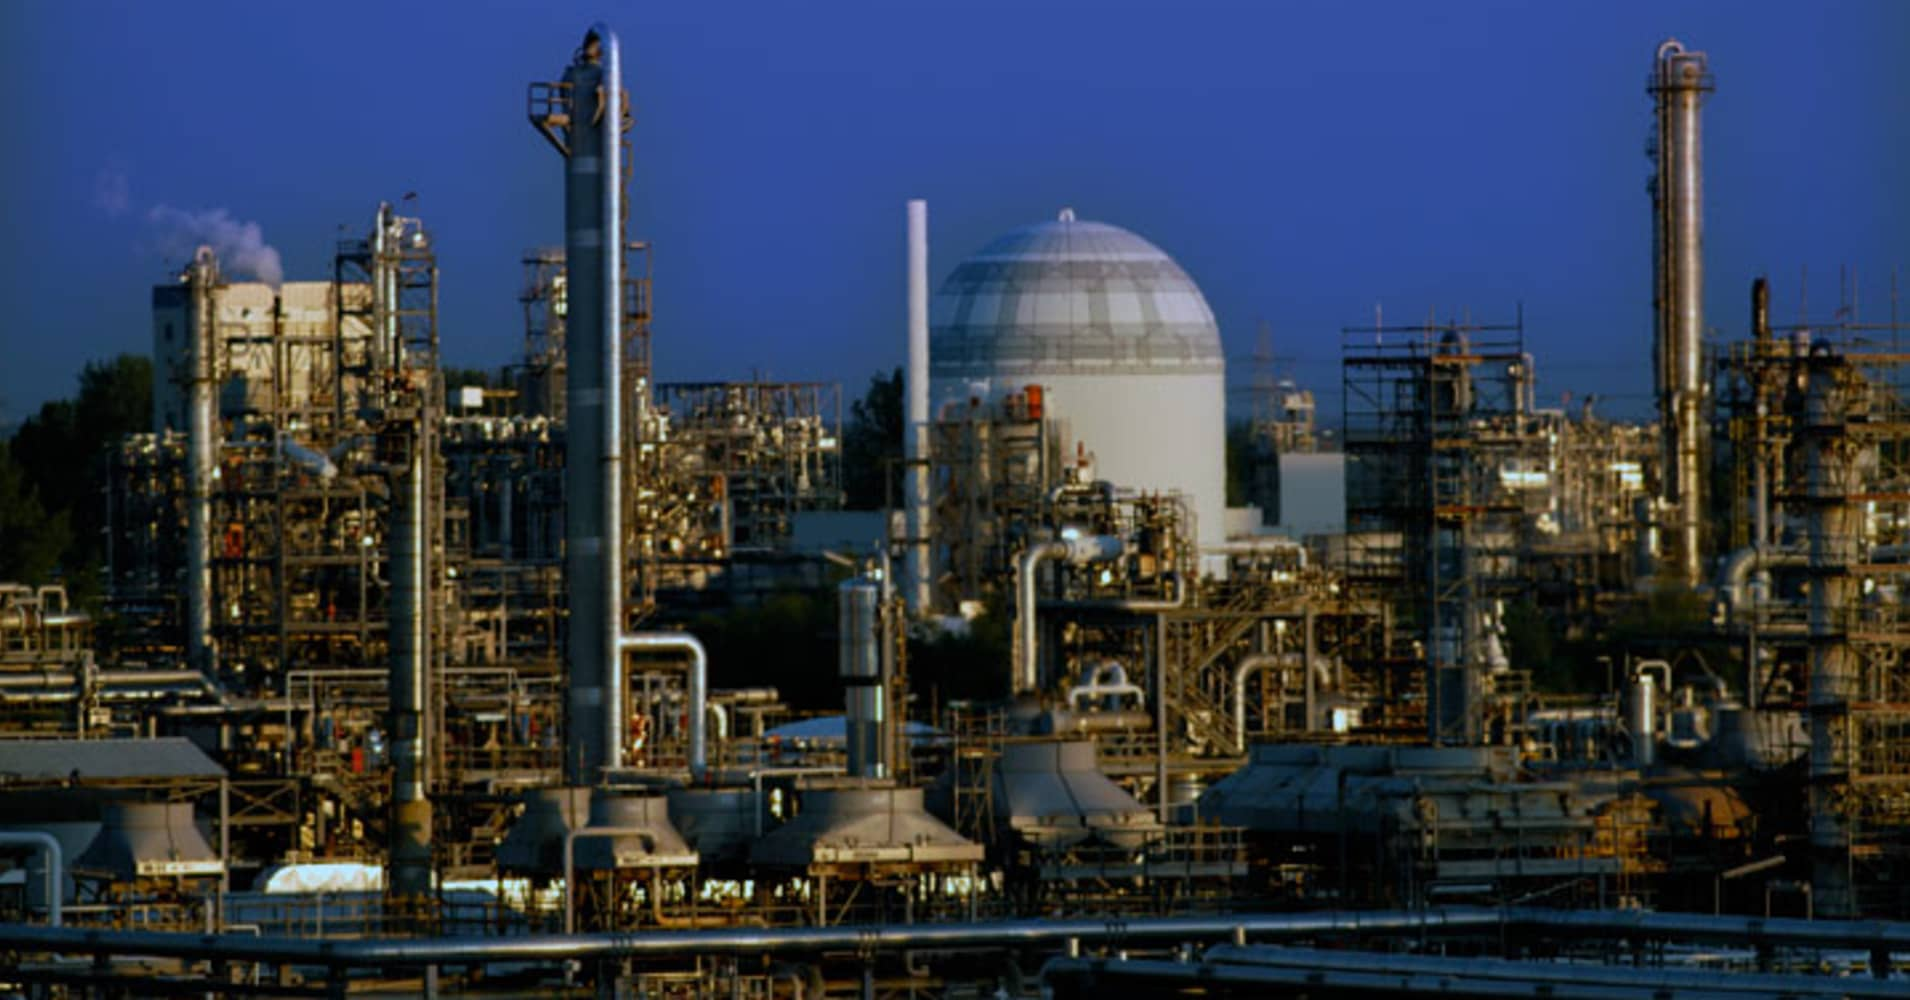 Dow Chemical to convert $4 billion of preferred shares into equity